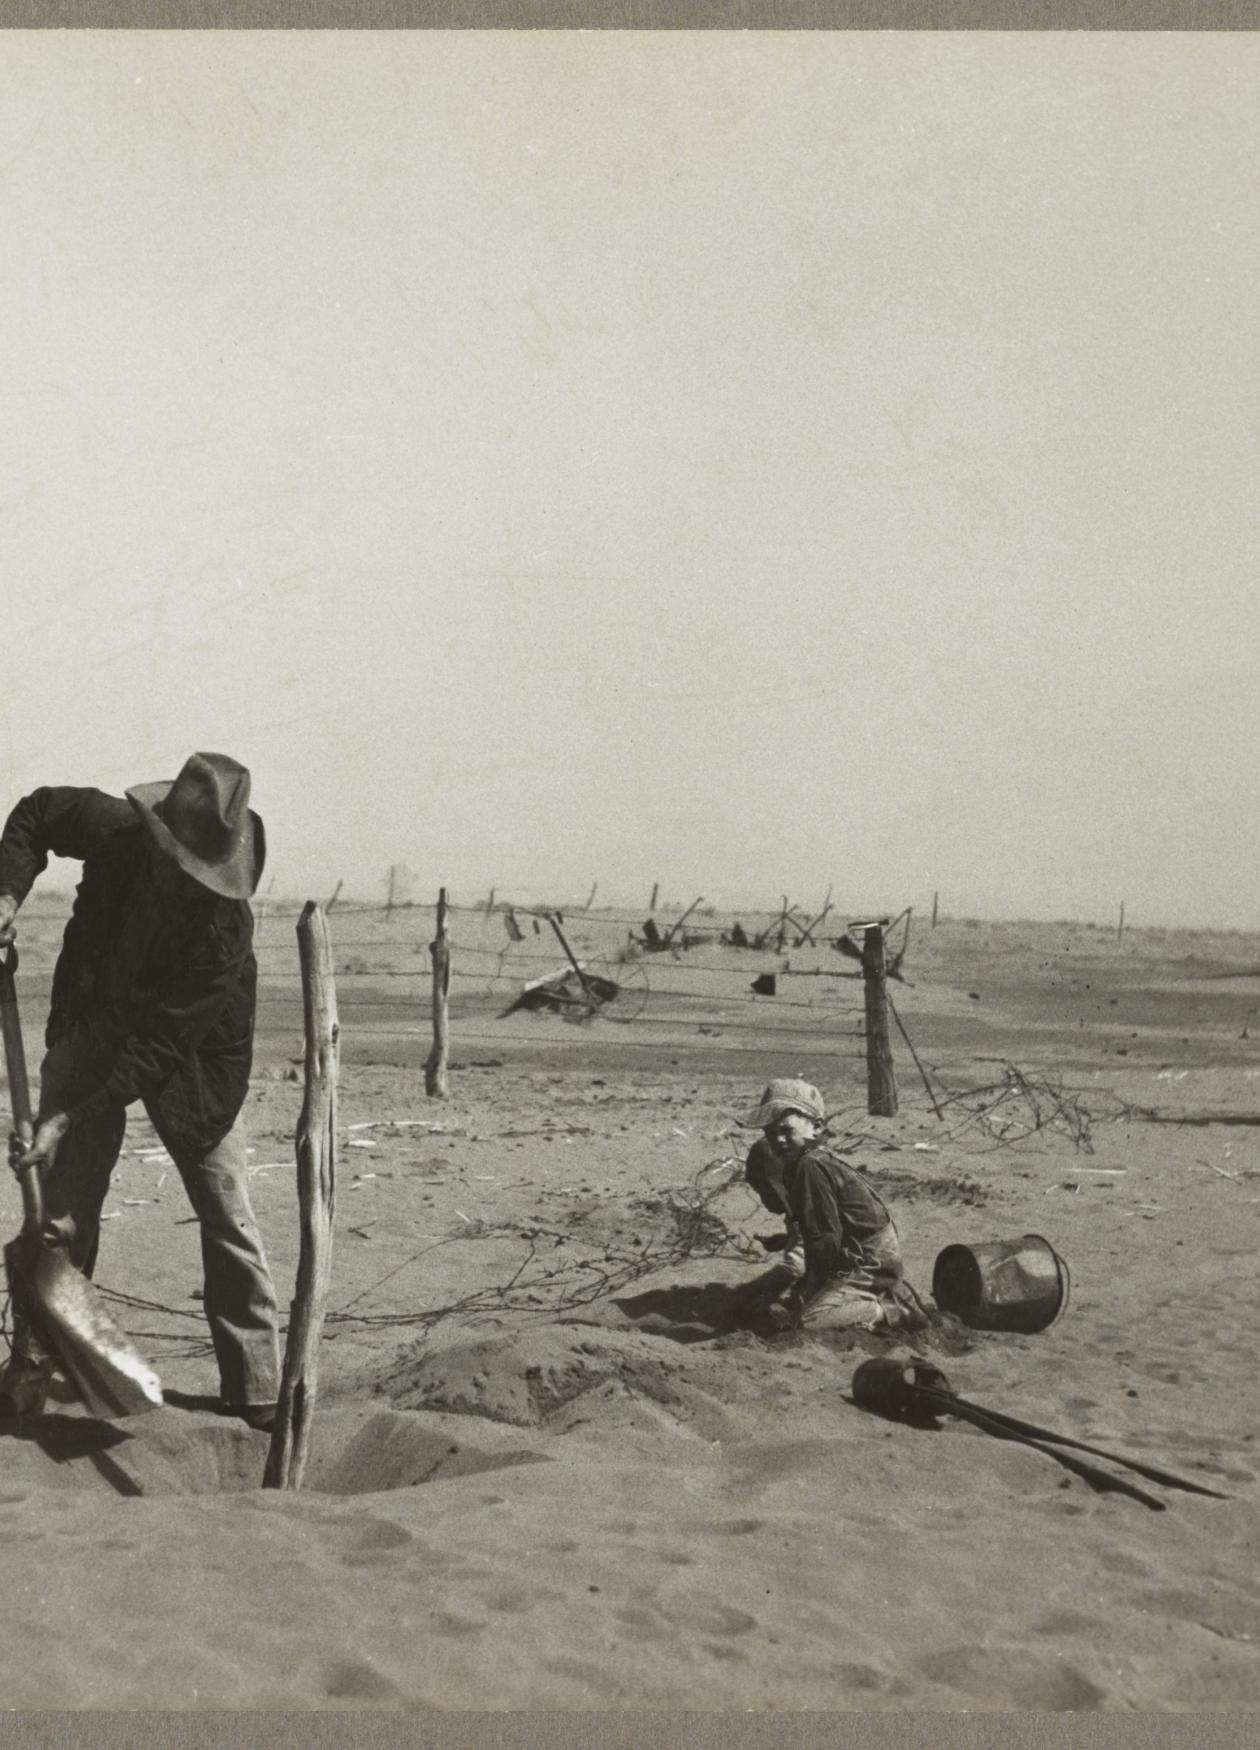 Black and white photo of a man shoveling sand in the foreground, with a child to his right, sitting on the plain, and a cow further in the distance.